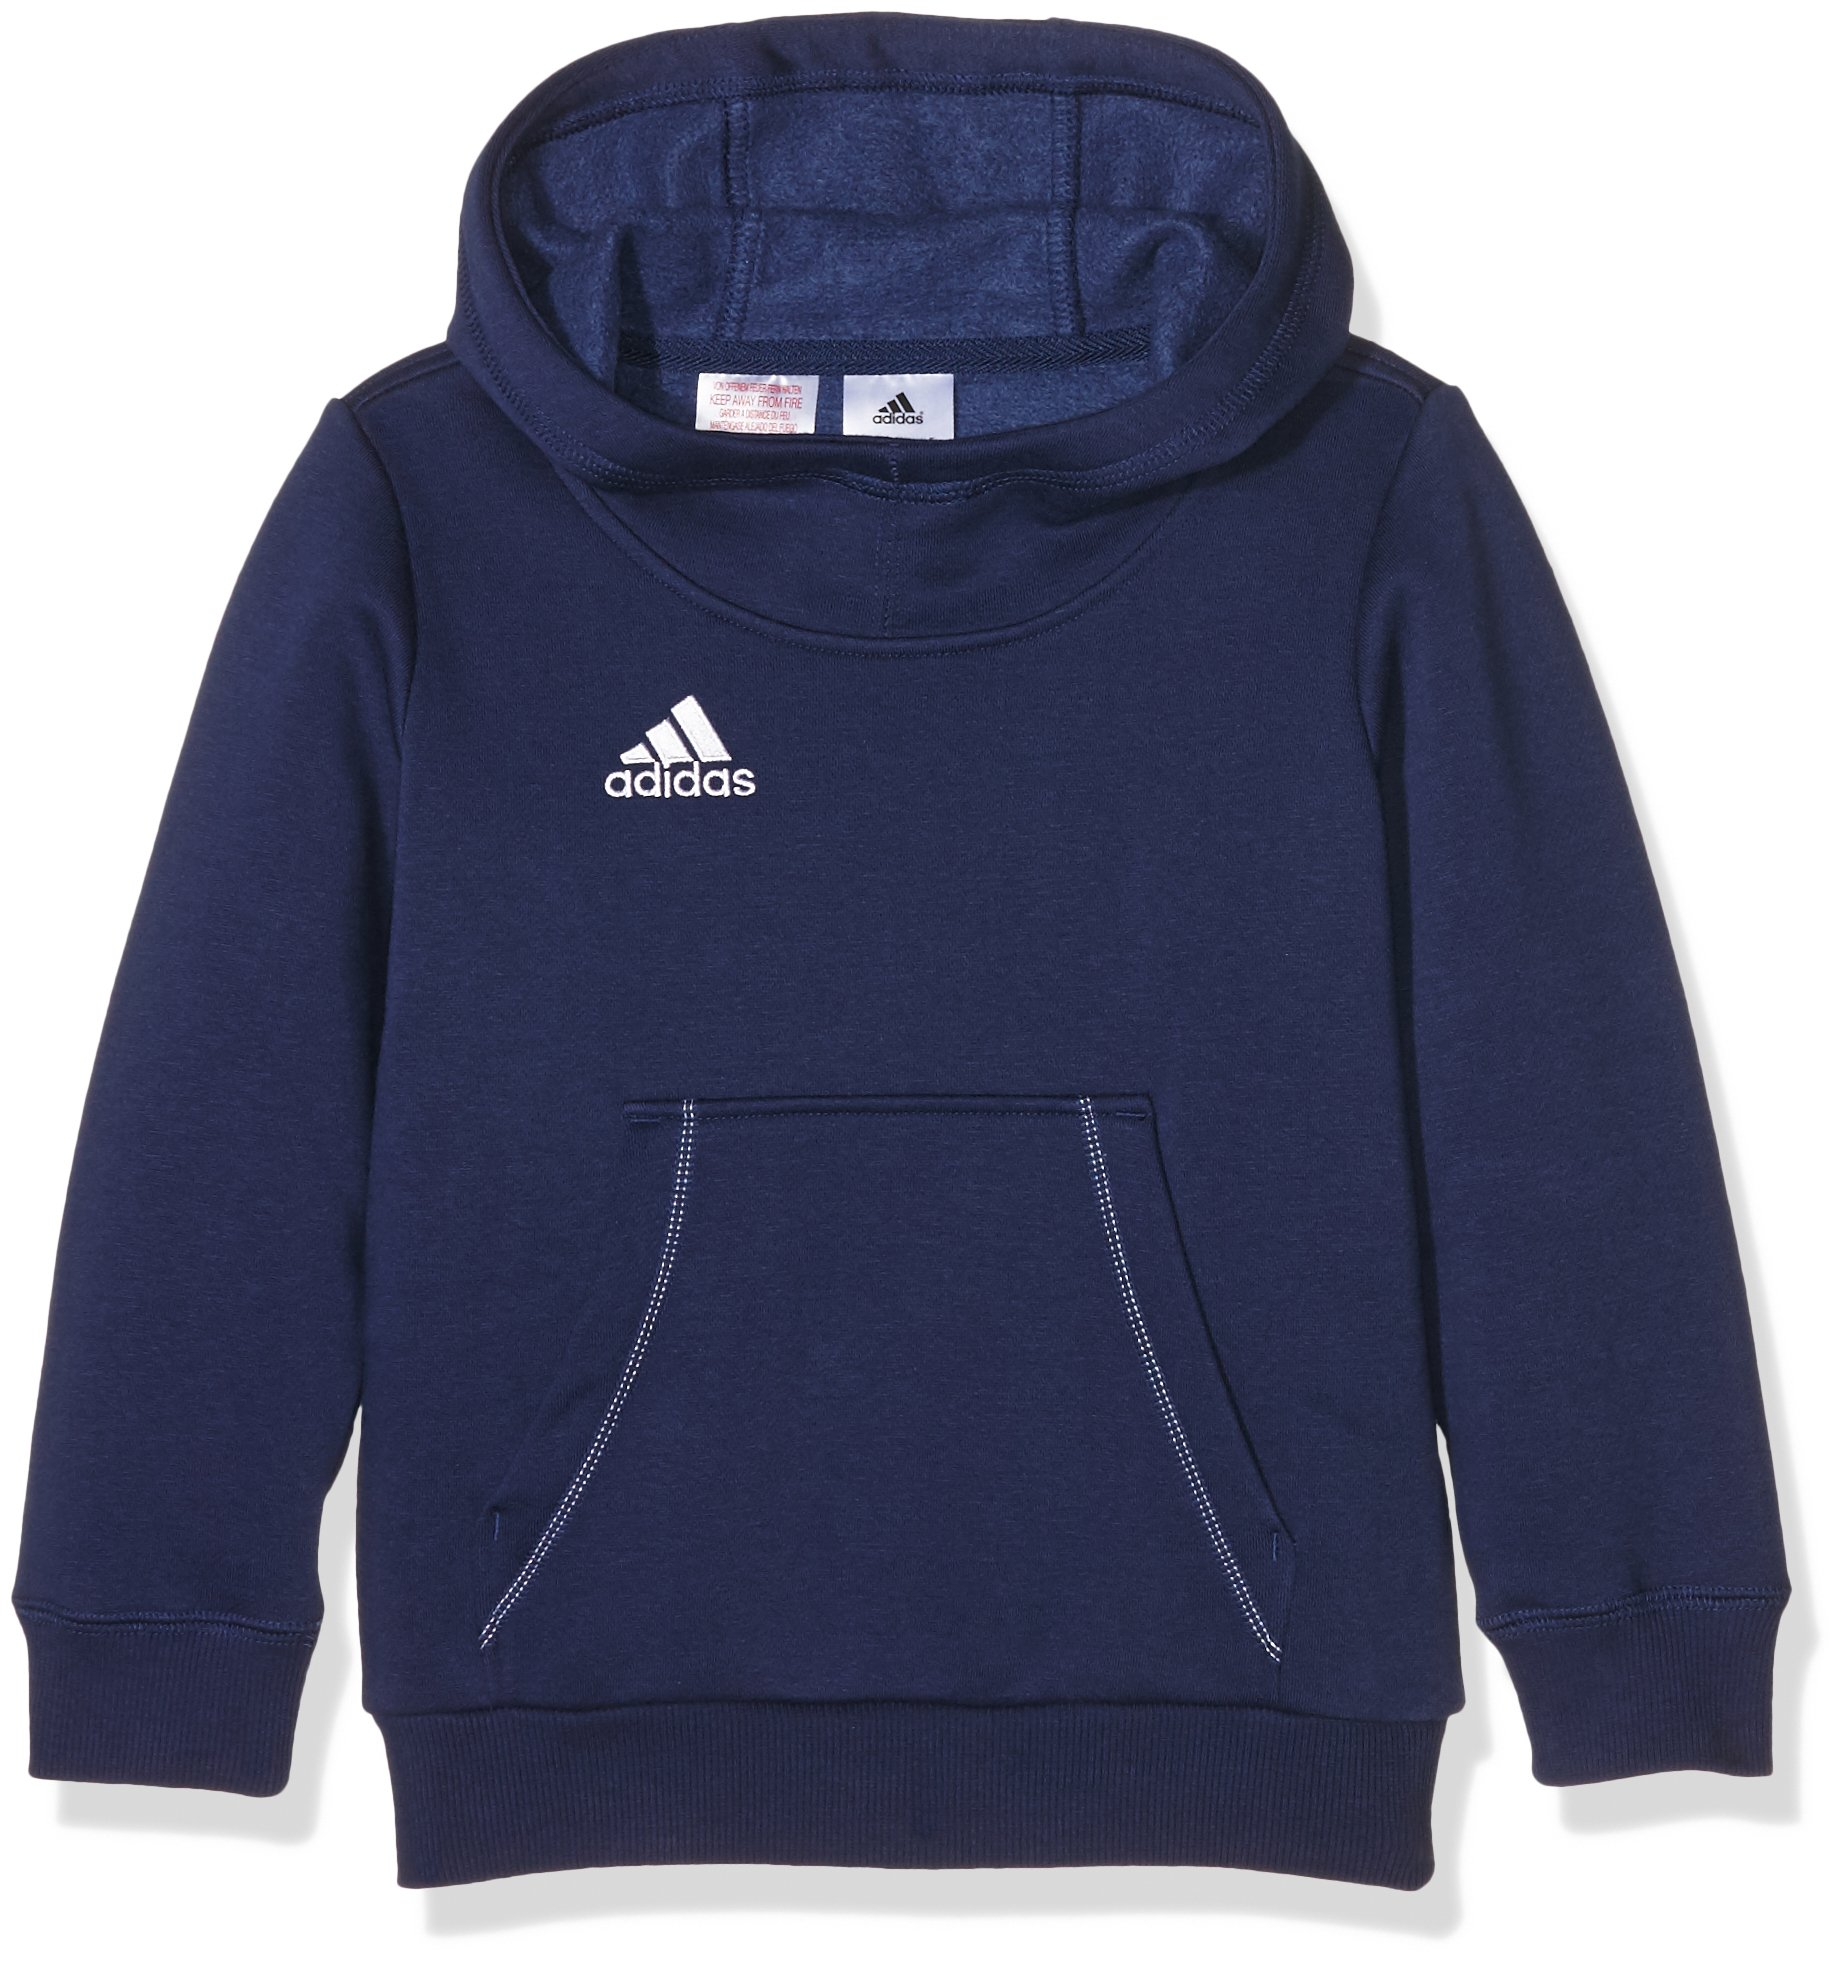 adidas Core 15 Plain Hoodie - Youth - Navy - Age 7-8